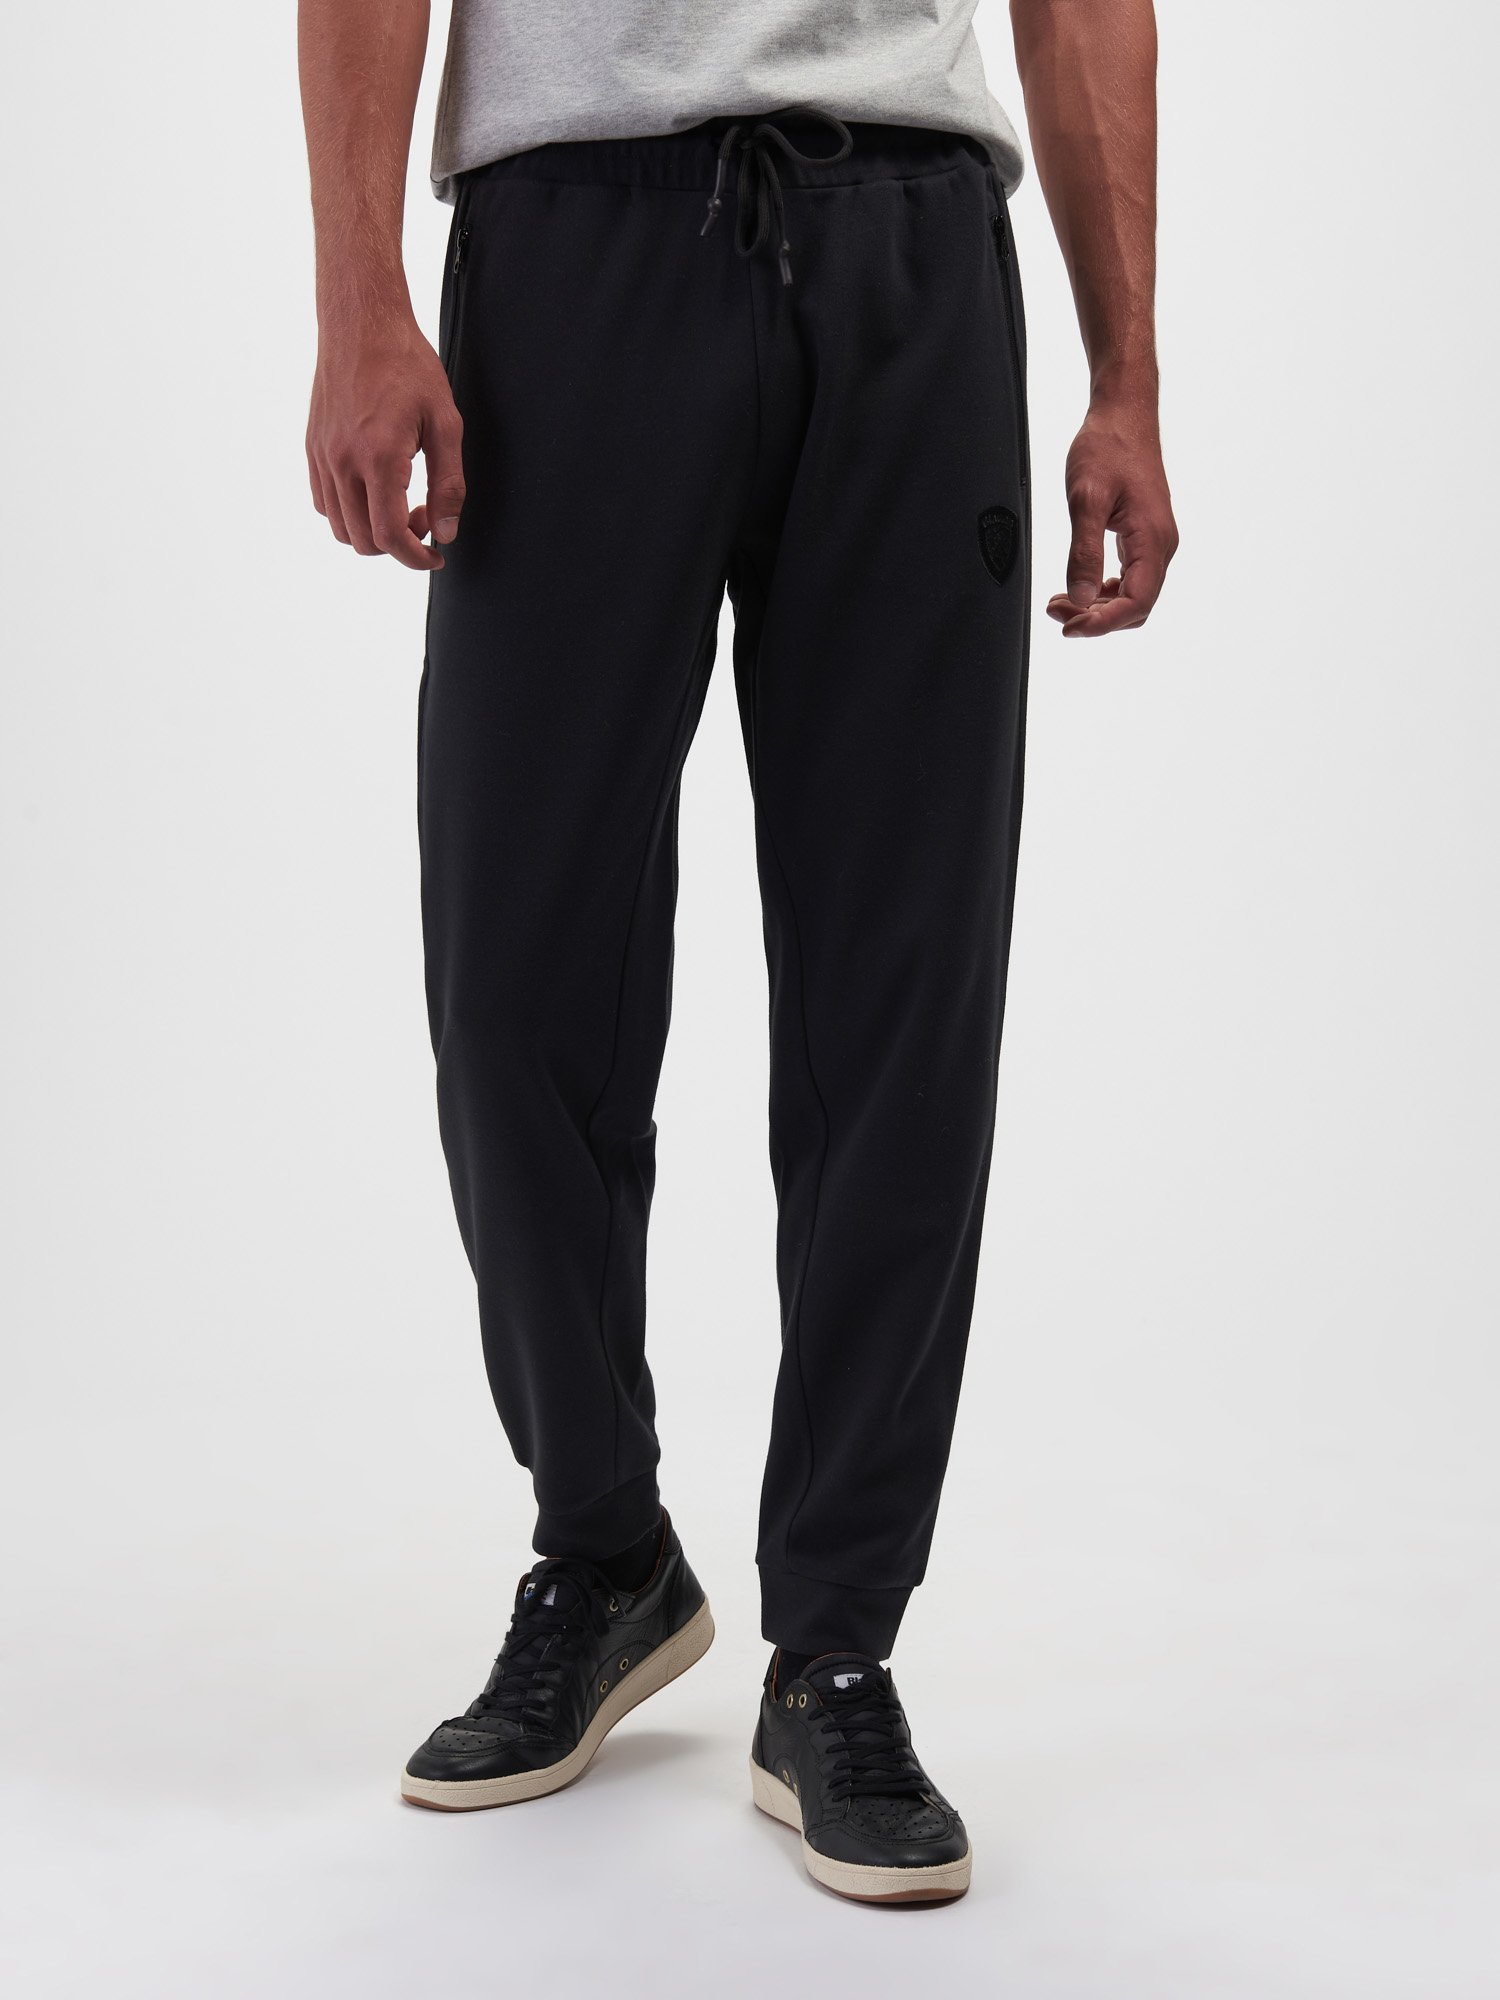 PANTALON DOUBLE FACE - Blauer